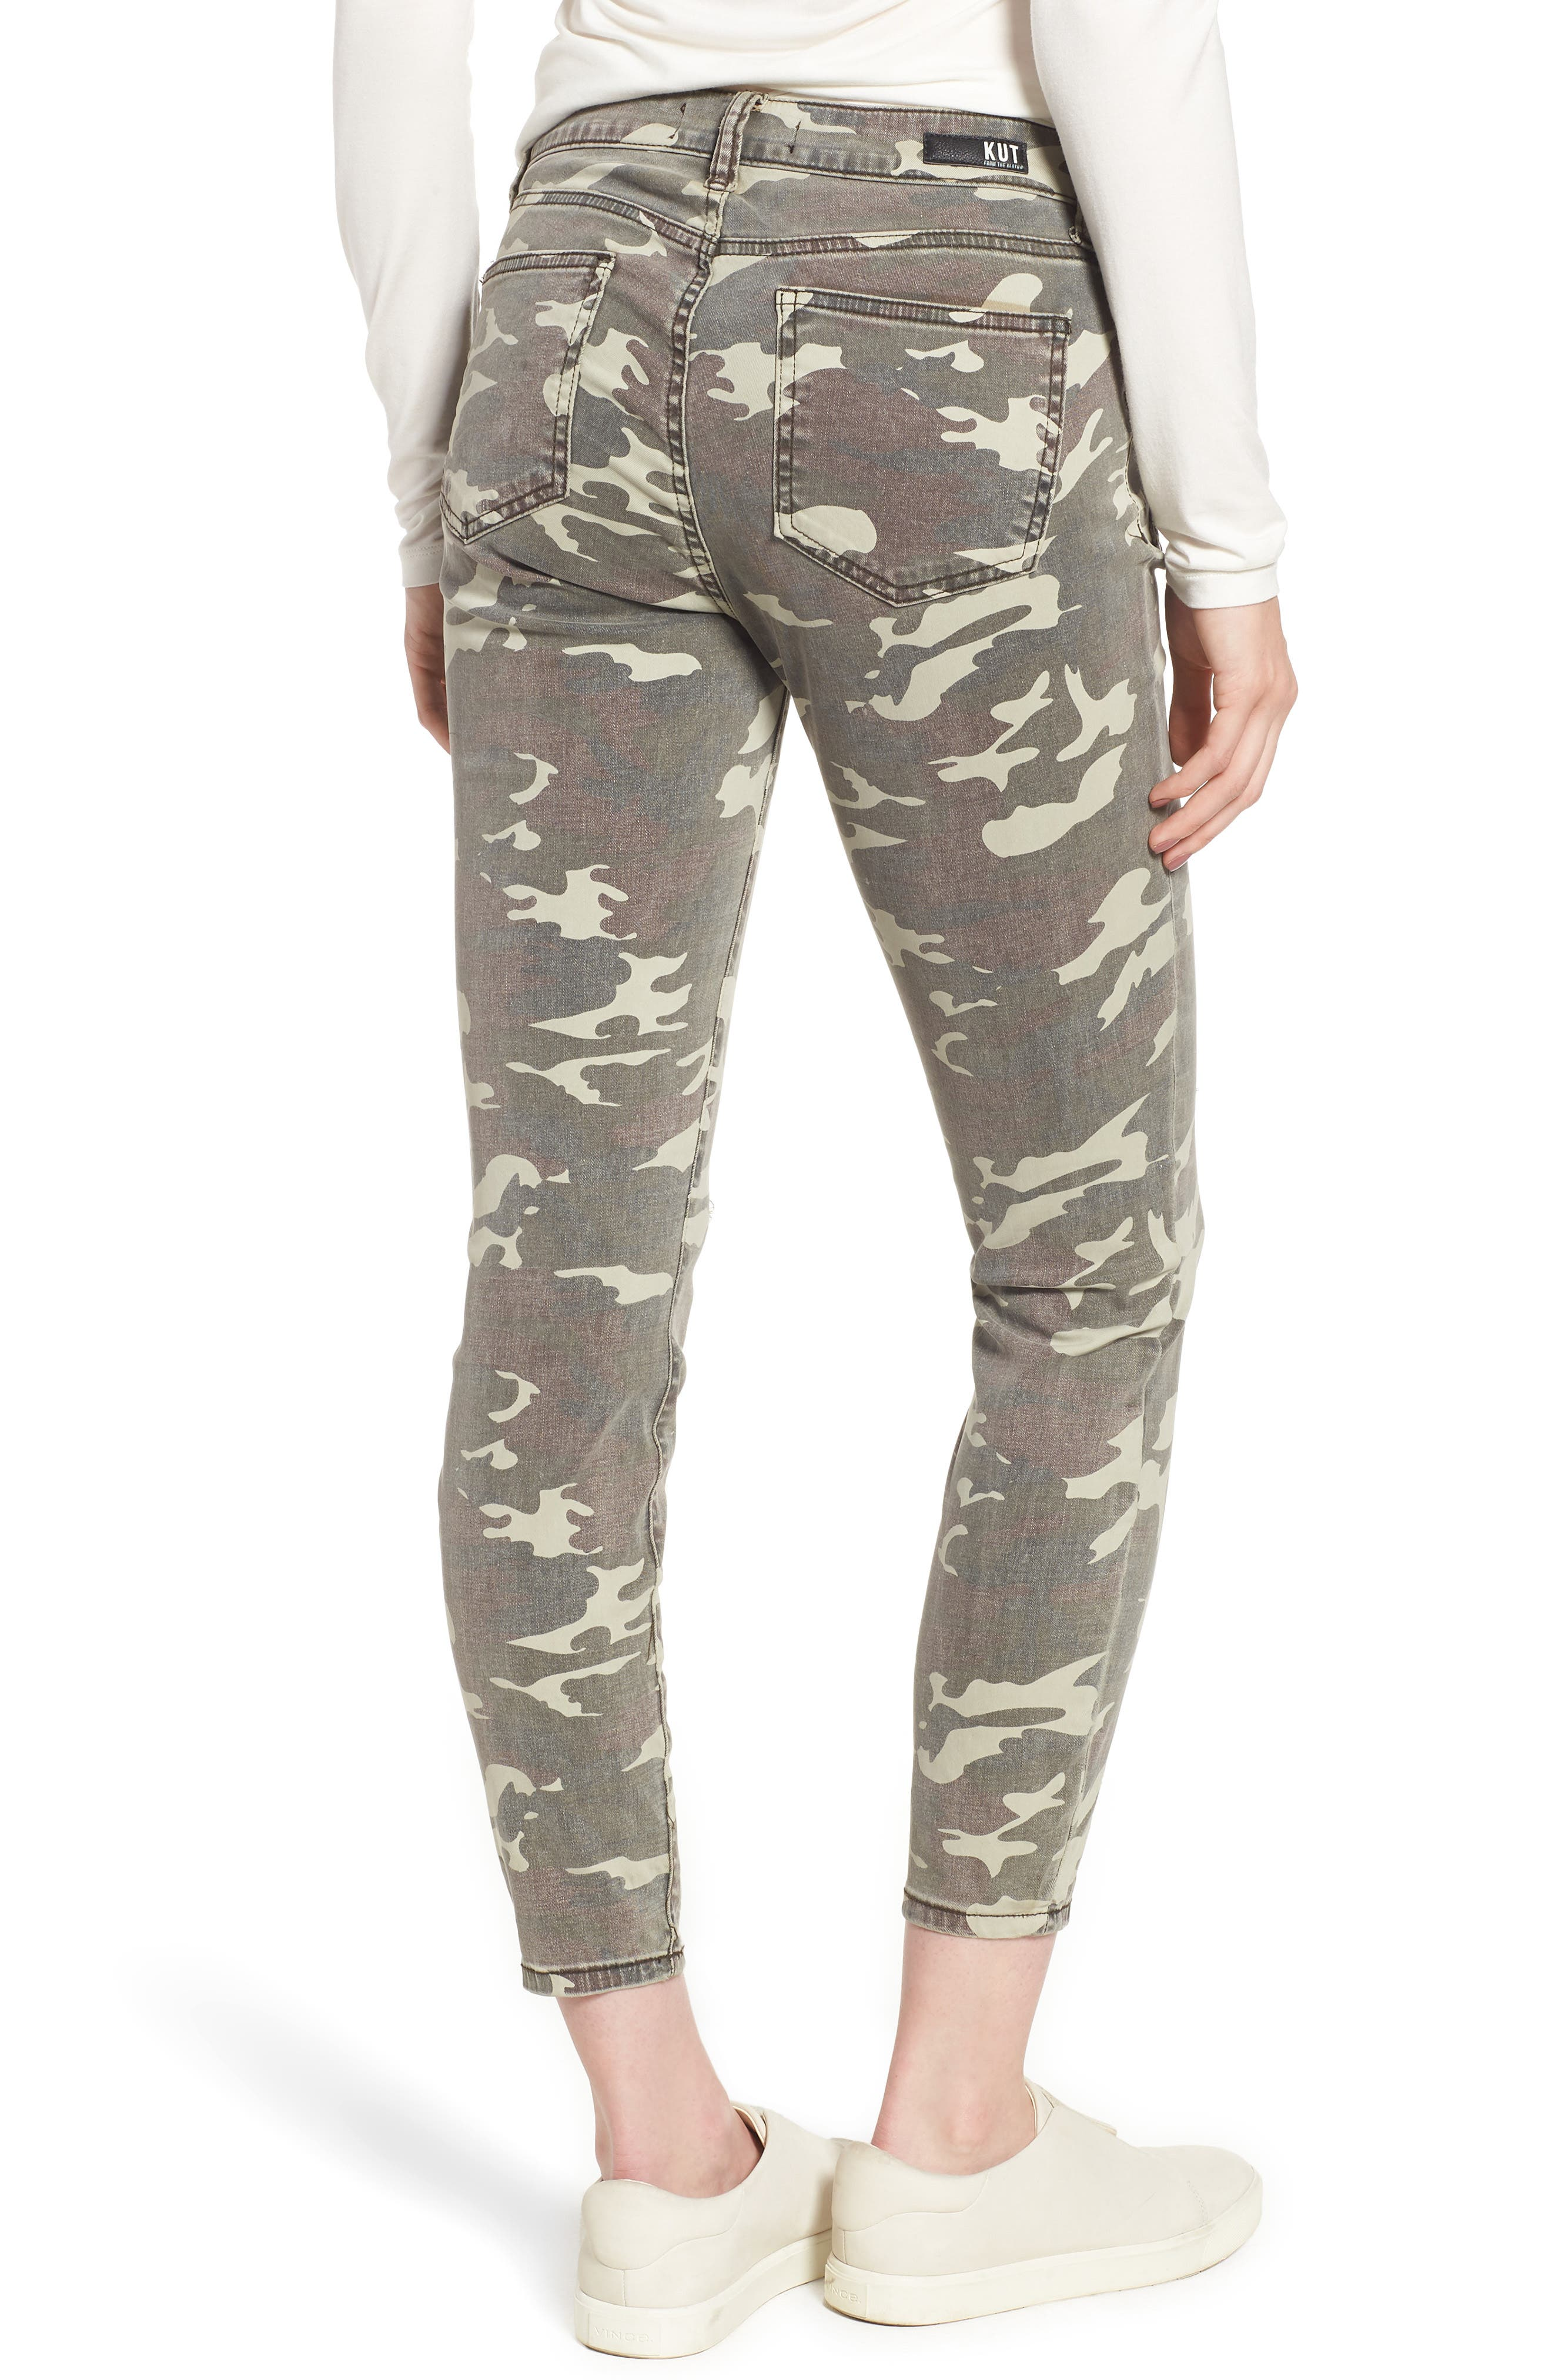 KUT FROM THE KLOTH, Connie Ankle Skinny Camo Jeans, Alternate thumbnail 2, color, 317